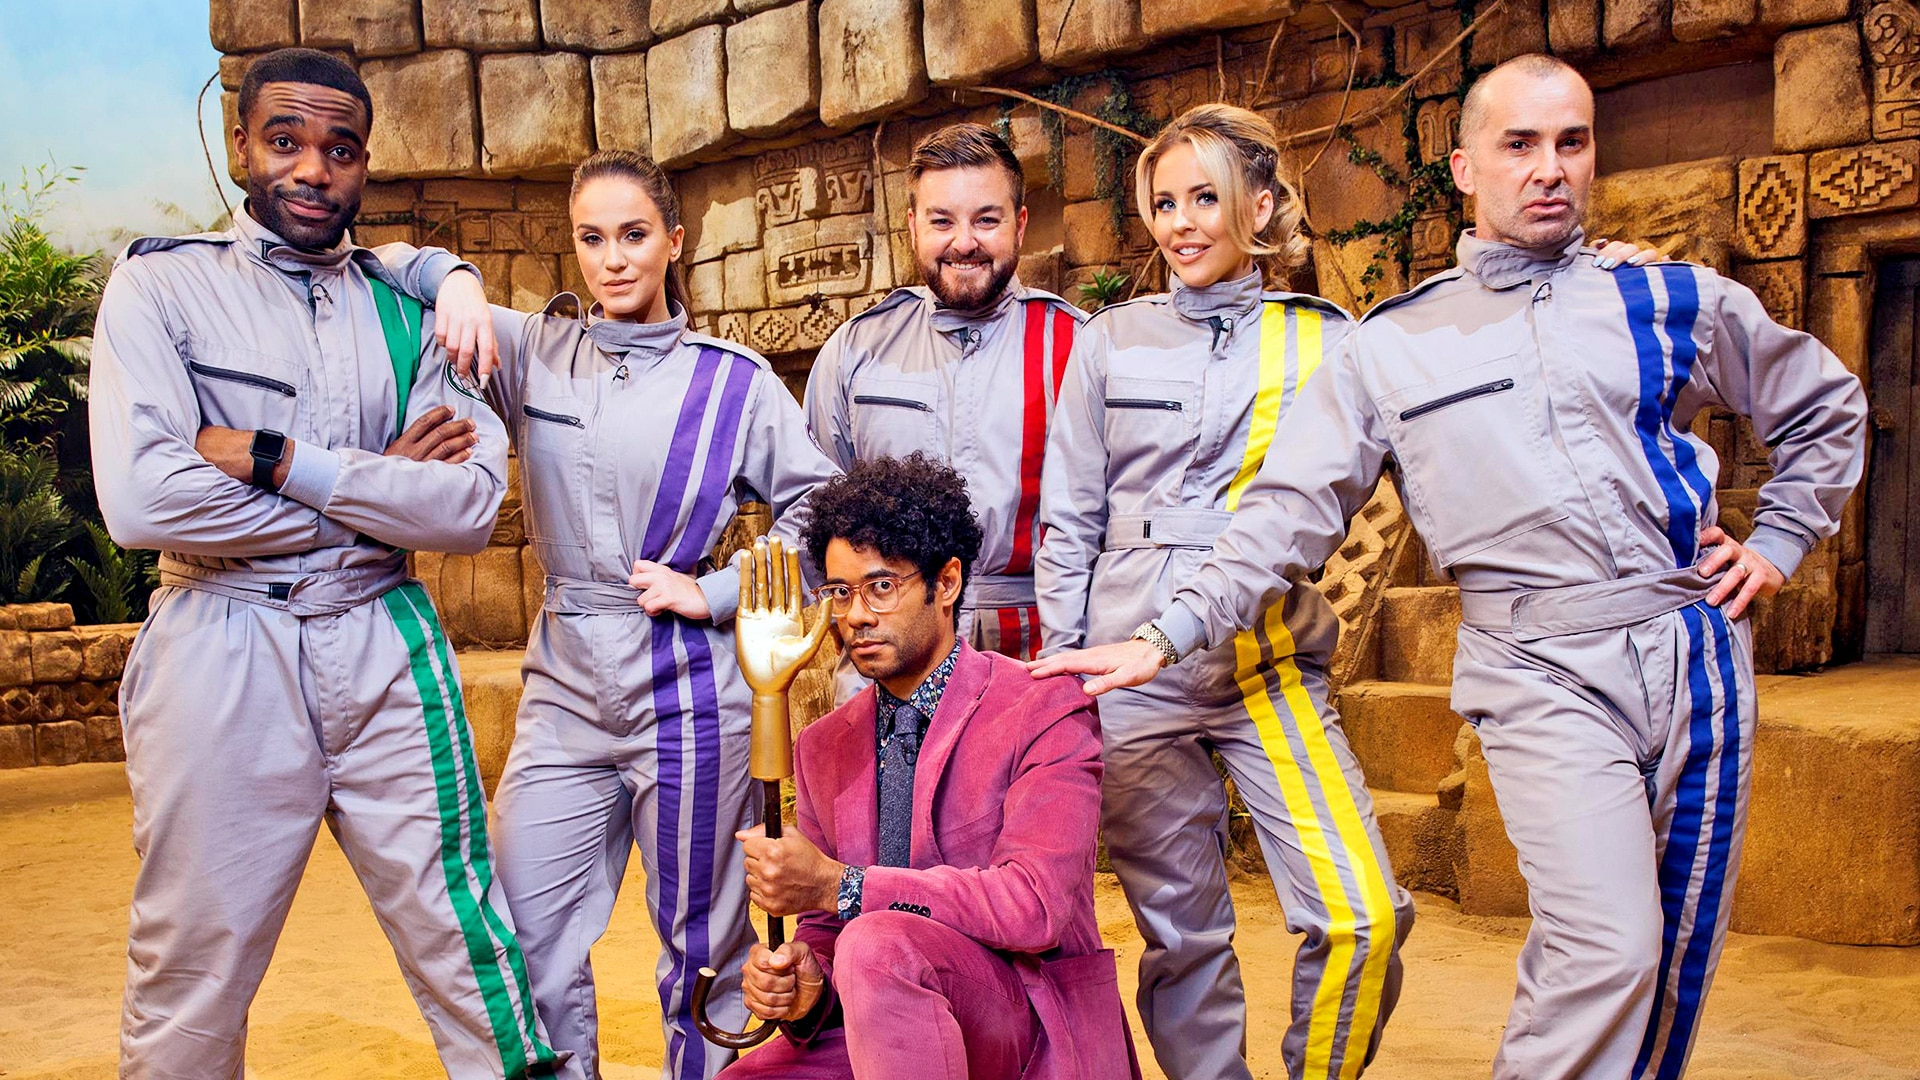 The Crystal Maze - All 4